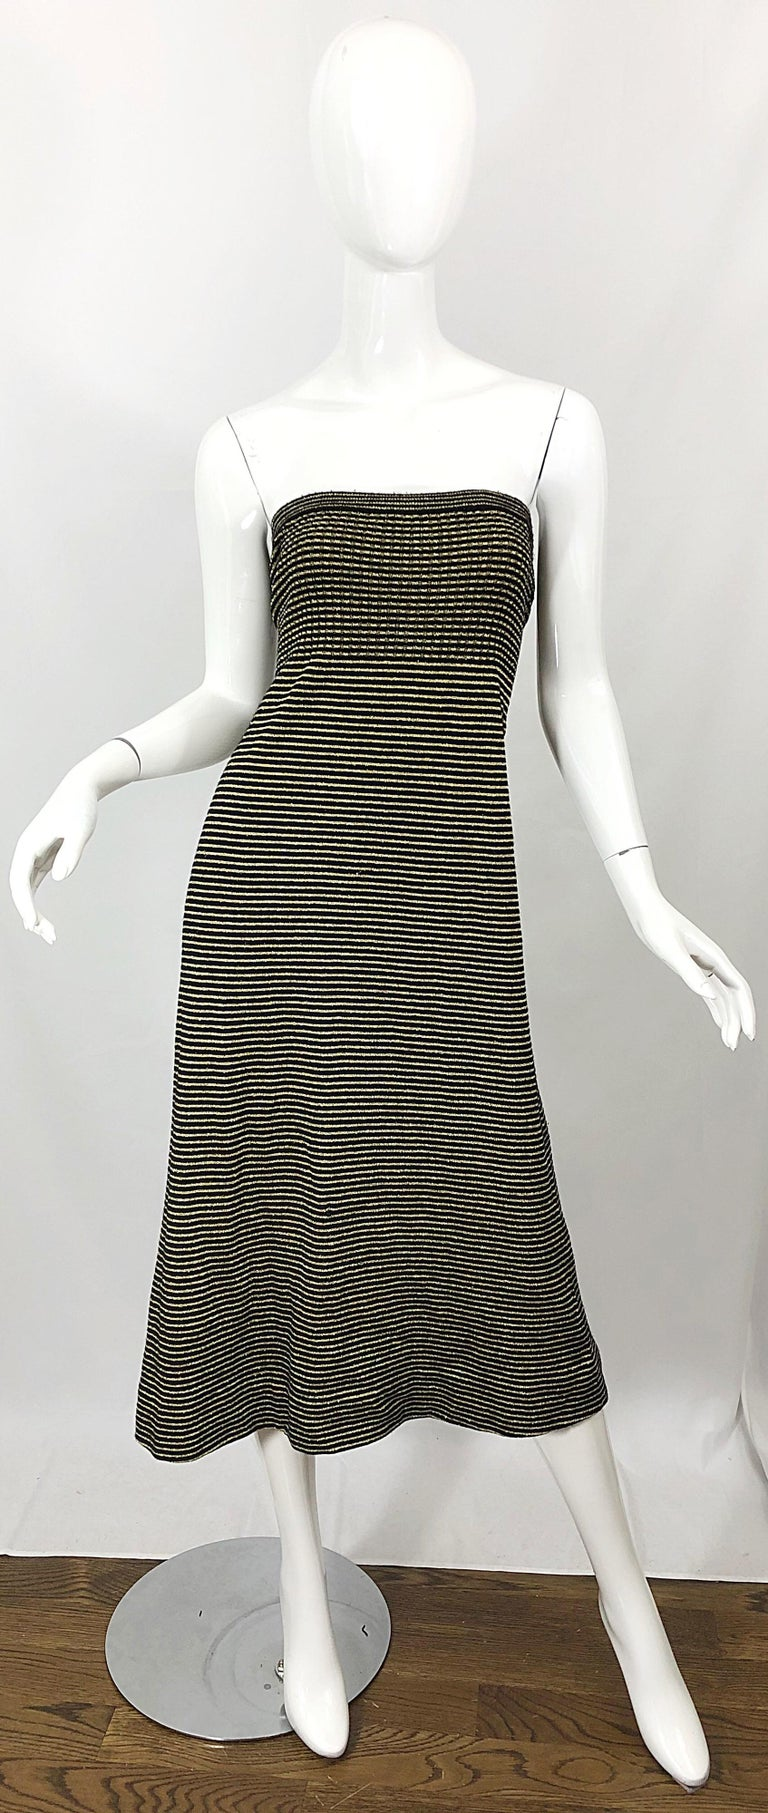 Vintage Yves Saint Laurent YSL 70s Gold Black Strapless Knit Dress or Maxi Skirt In Excellent Condition For Sale In Chicago, IL